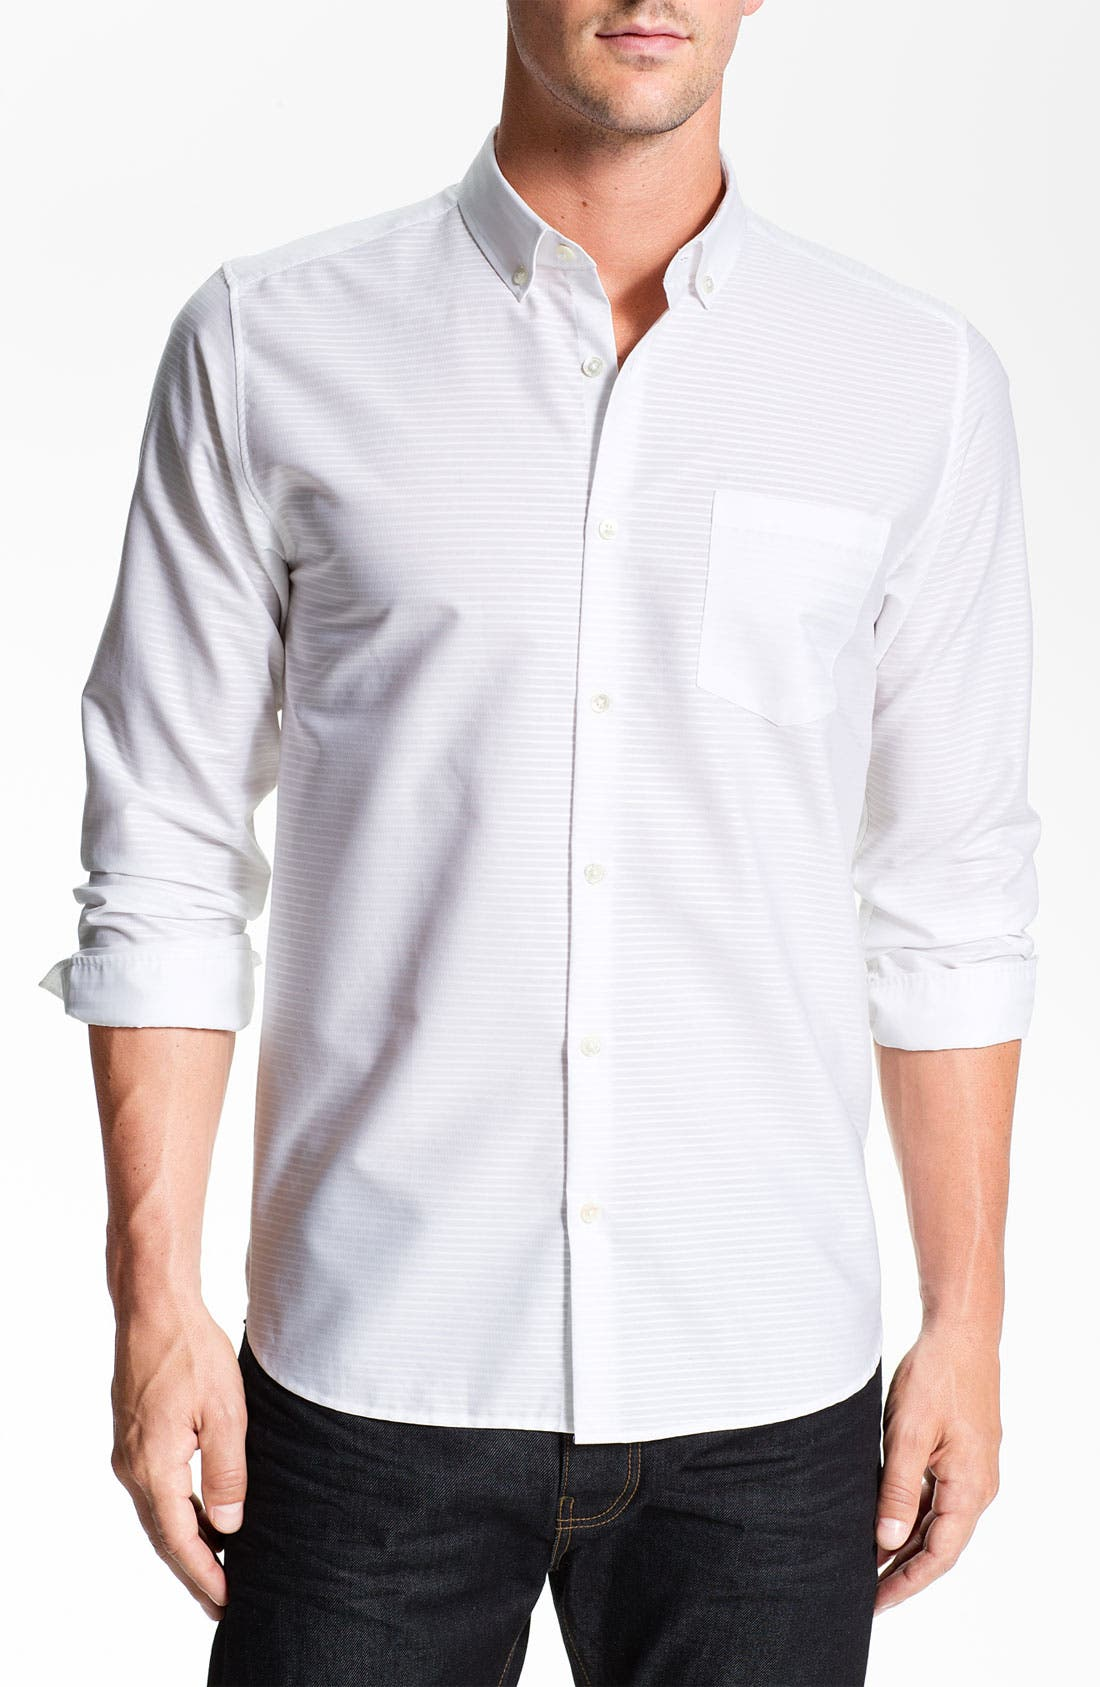 Alternate Image 1 Selected - Ted Baker London 'Whipit' Woven Sport Shirt